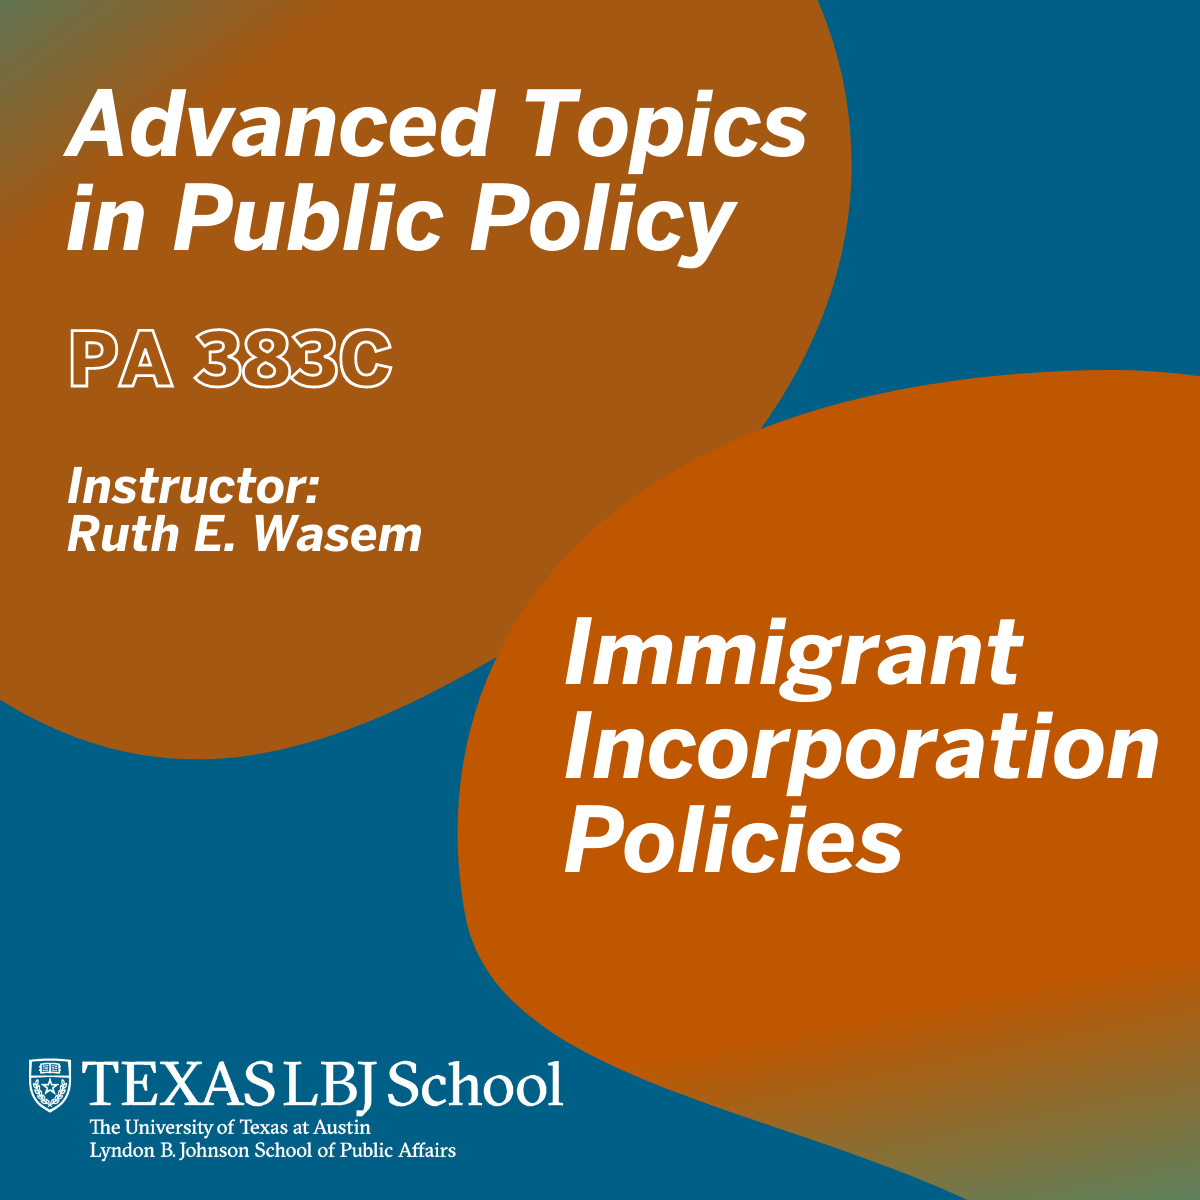 Fall 2021 class: Advanced Topics in Public Policy: Immigrant Incorporation Policies